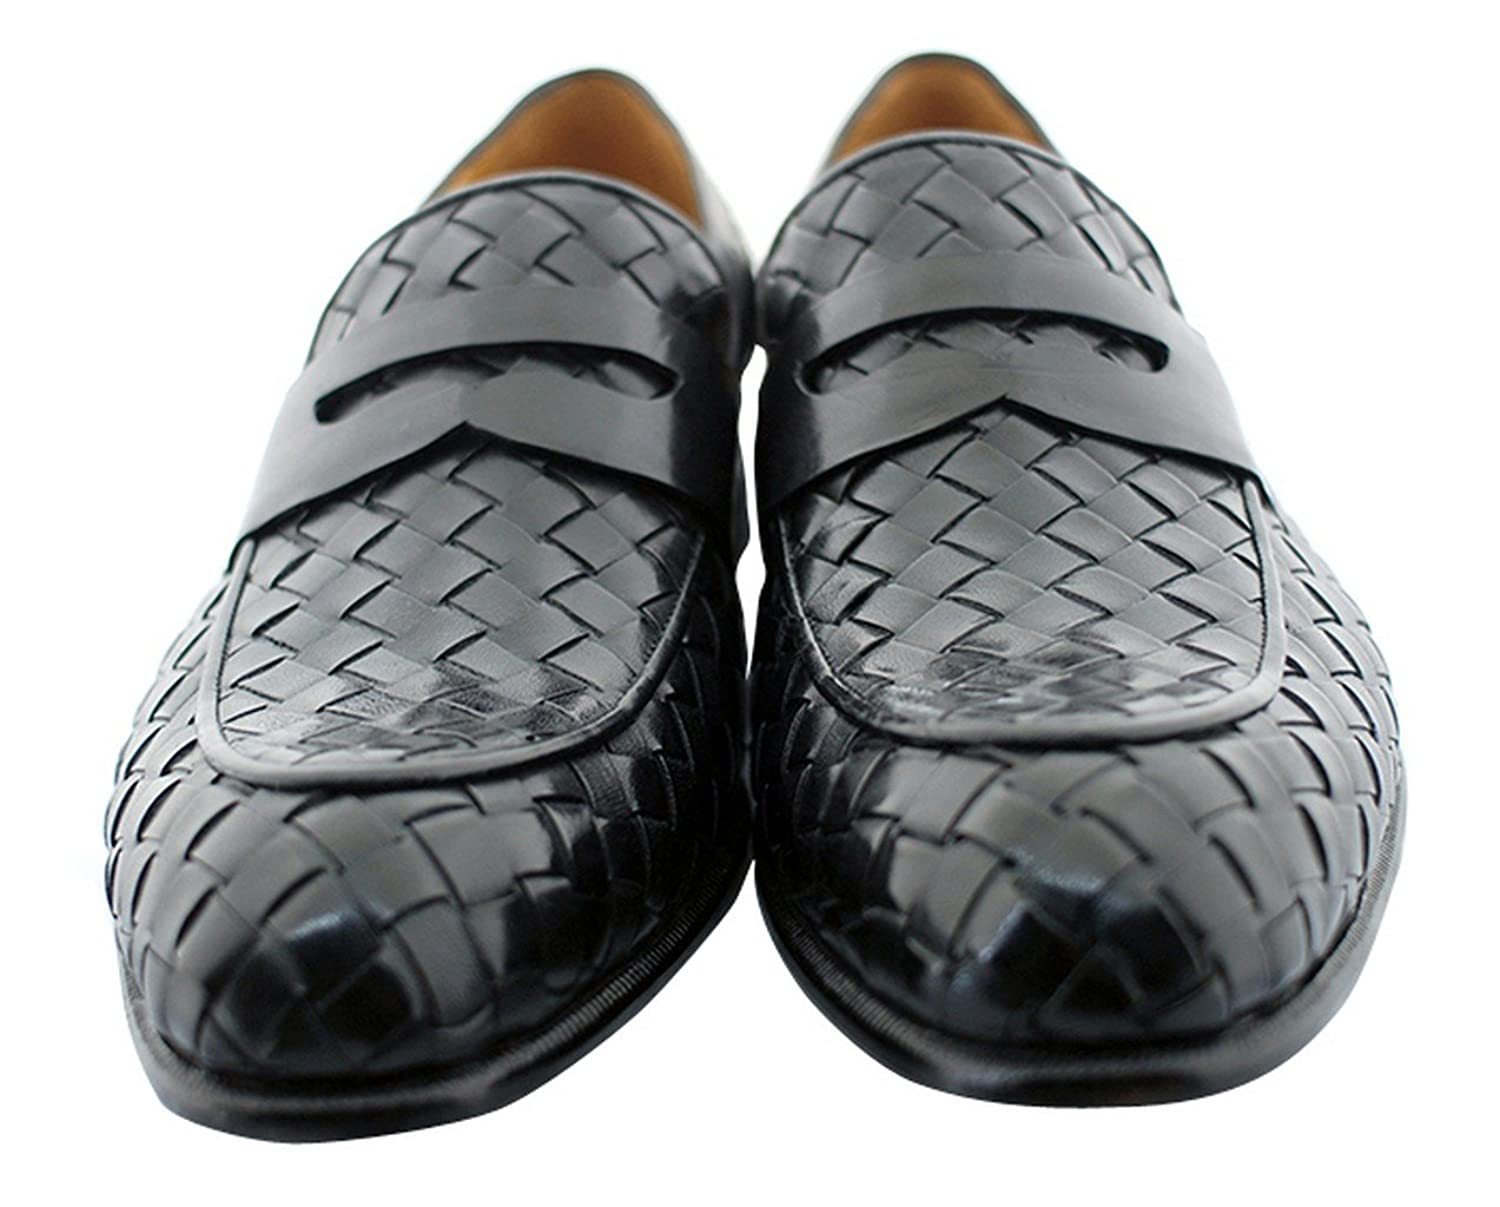 Black Battersea Men's Luxury Classic Handmade Leather Shoes